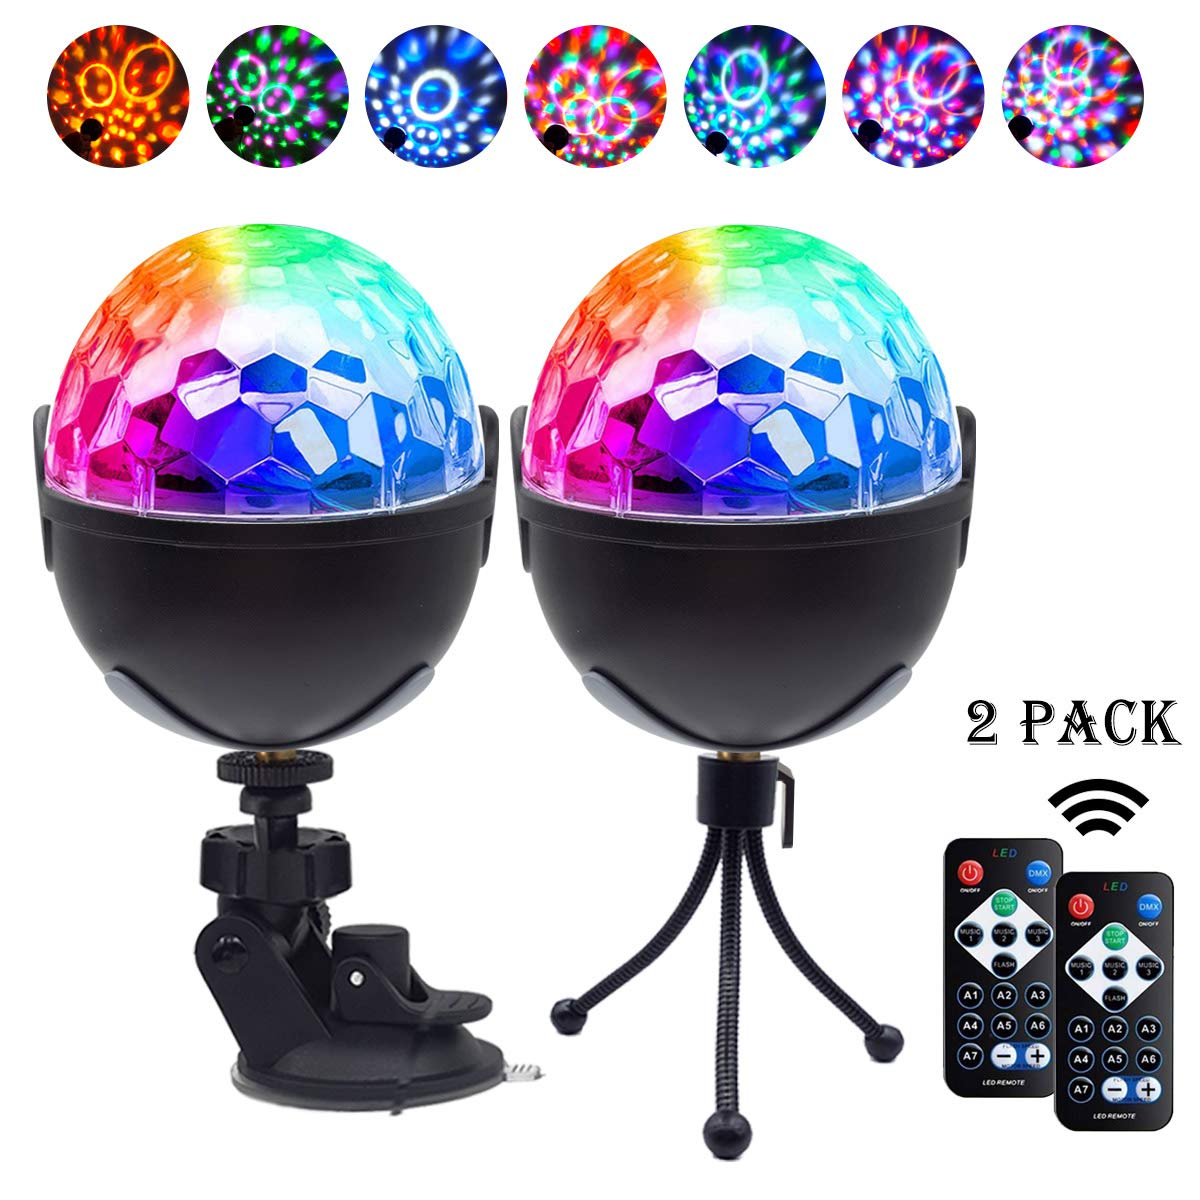 Disco Ball Party Lights,Sound Activated Disco Lights with Remote Control,7 RBG Modes Atmosphere Strobe Light for Home Room Dance Birthday DJ Bar Karaoke Xmas Wedding Show Club Pub (Multicolor) by Lukasa